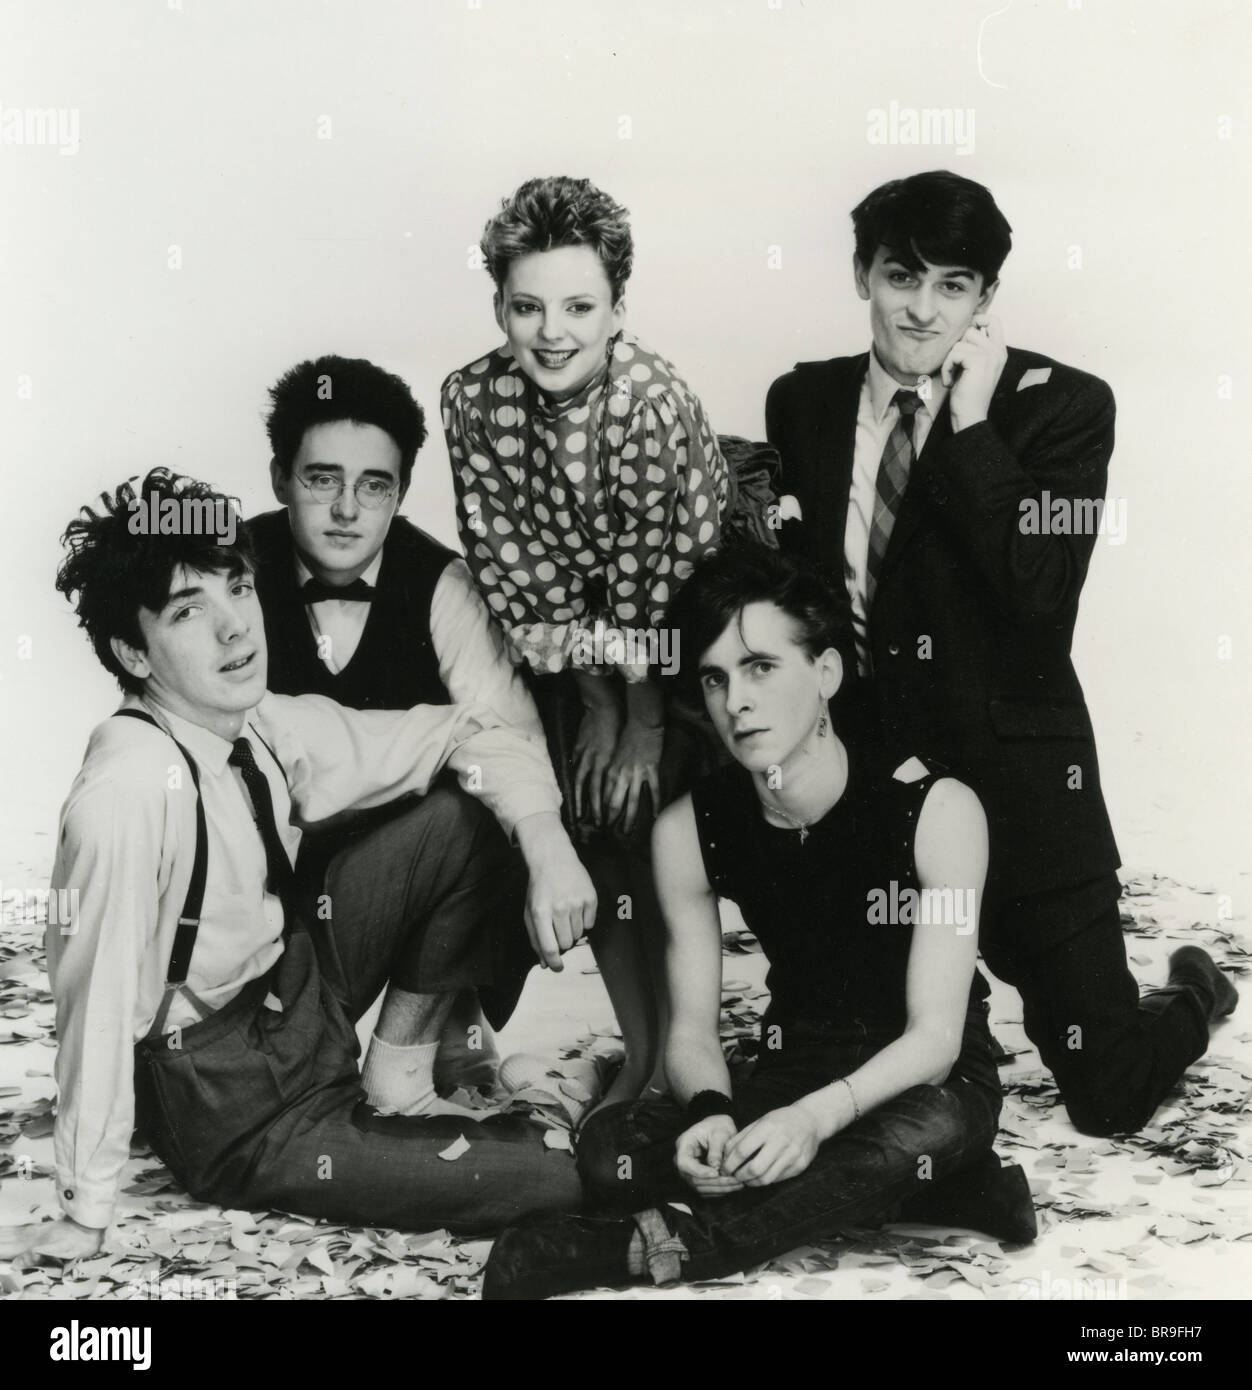 ALTERED IMAGES  Promotional photo of 1980s Scottish New Wave group with lead singer Clare Grogan - Stock Image